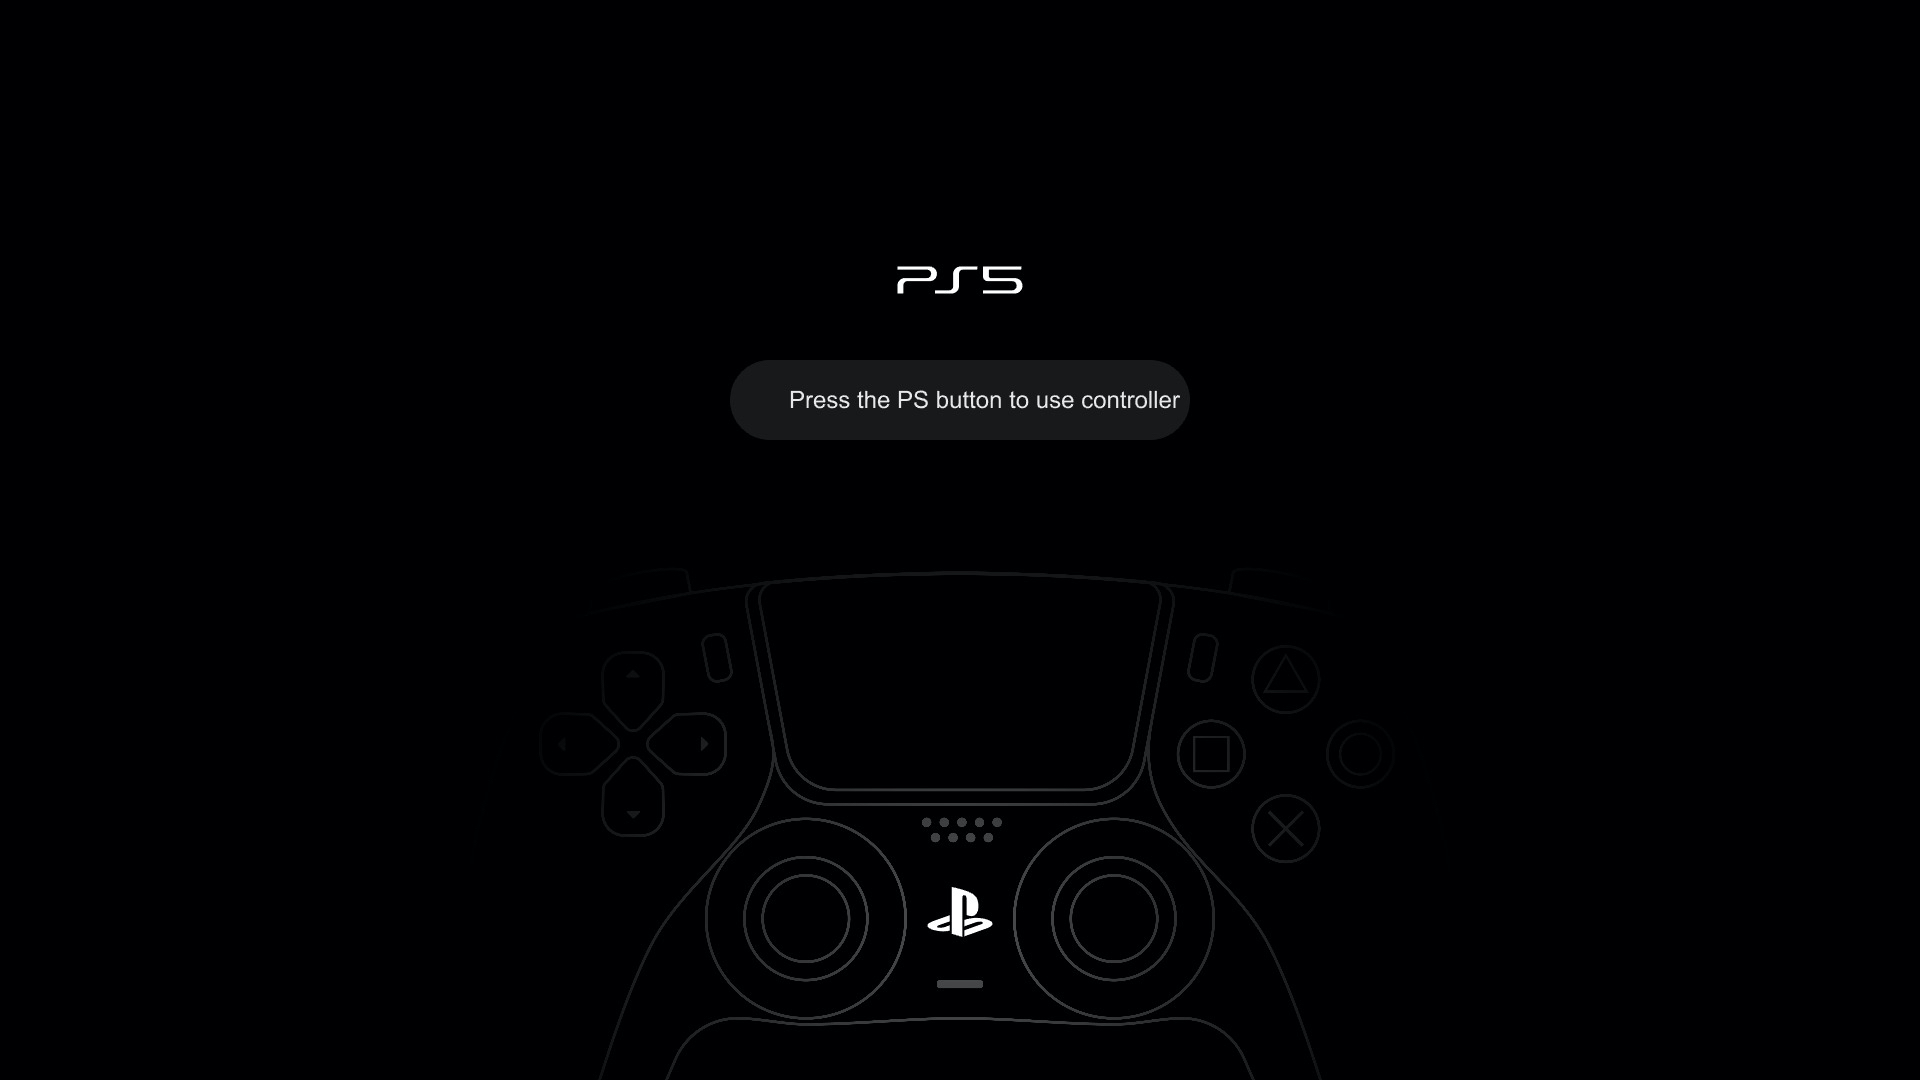 PlayStation 5 Concept UI for InVision Studio from UIGarage